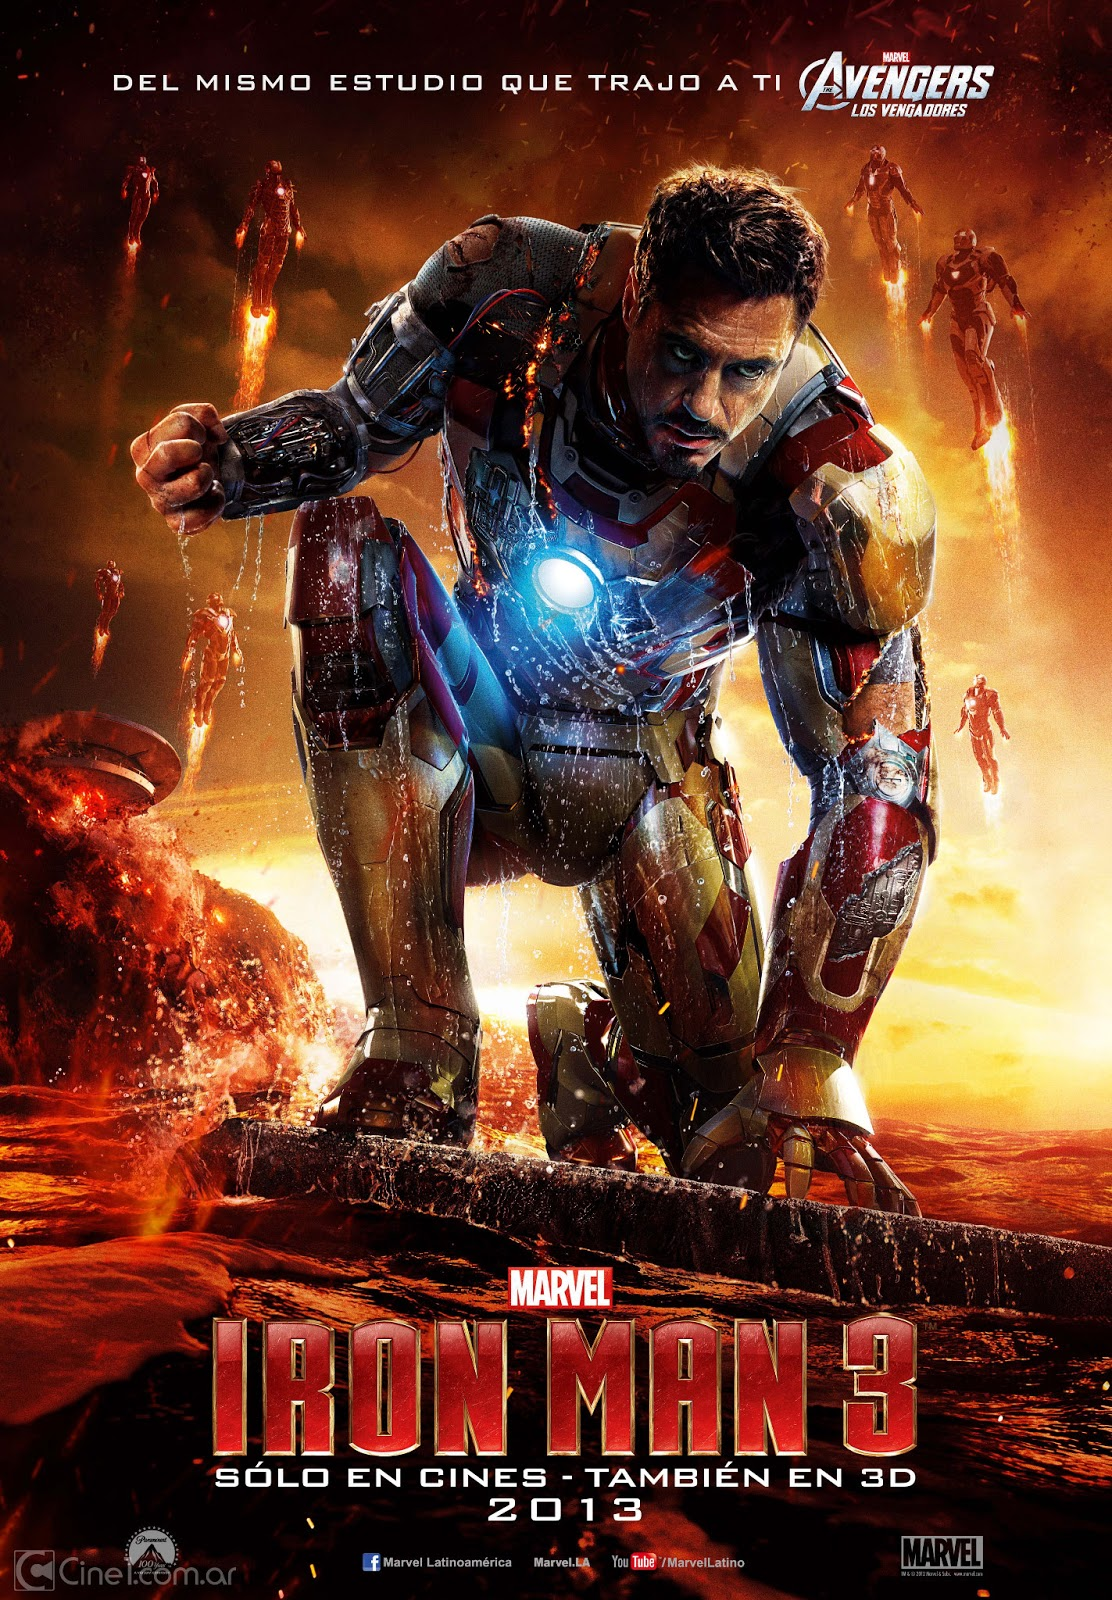 jedi mouseketeer collection of marvel 39 s iron man 3 movie poster art. Black Bedroom Furniture Sets. Home Design Ideas